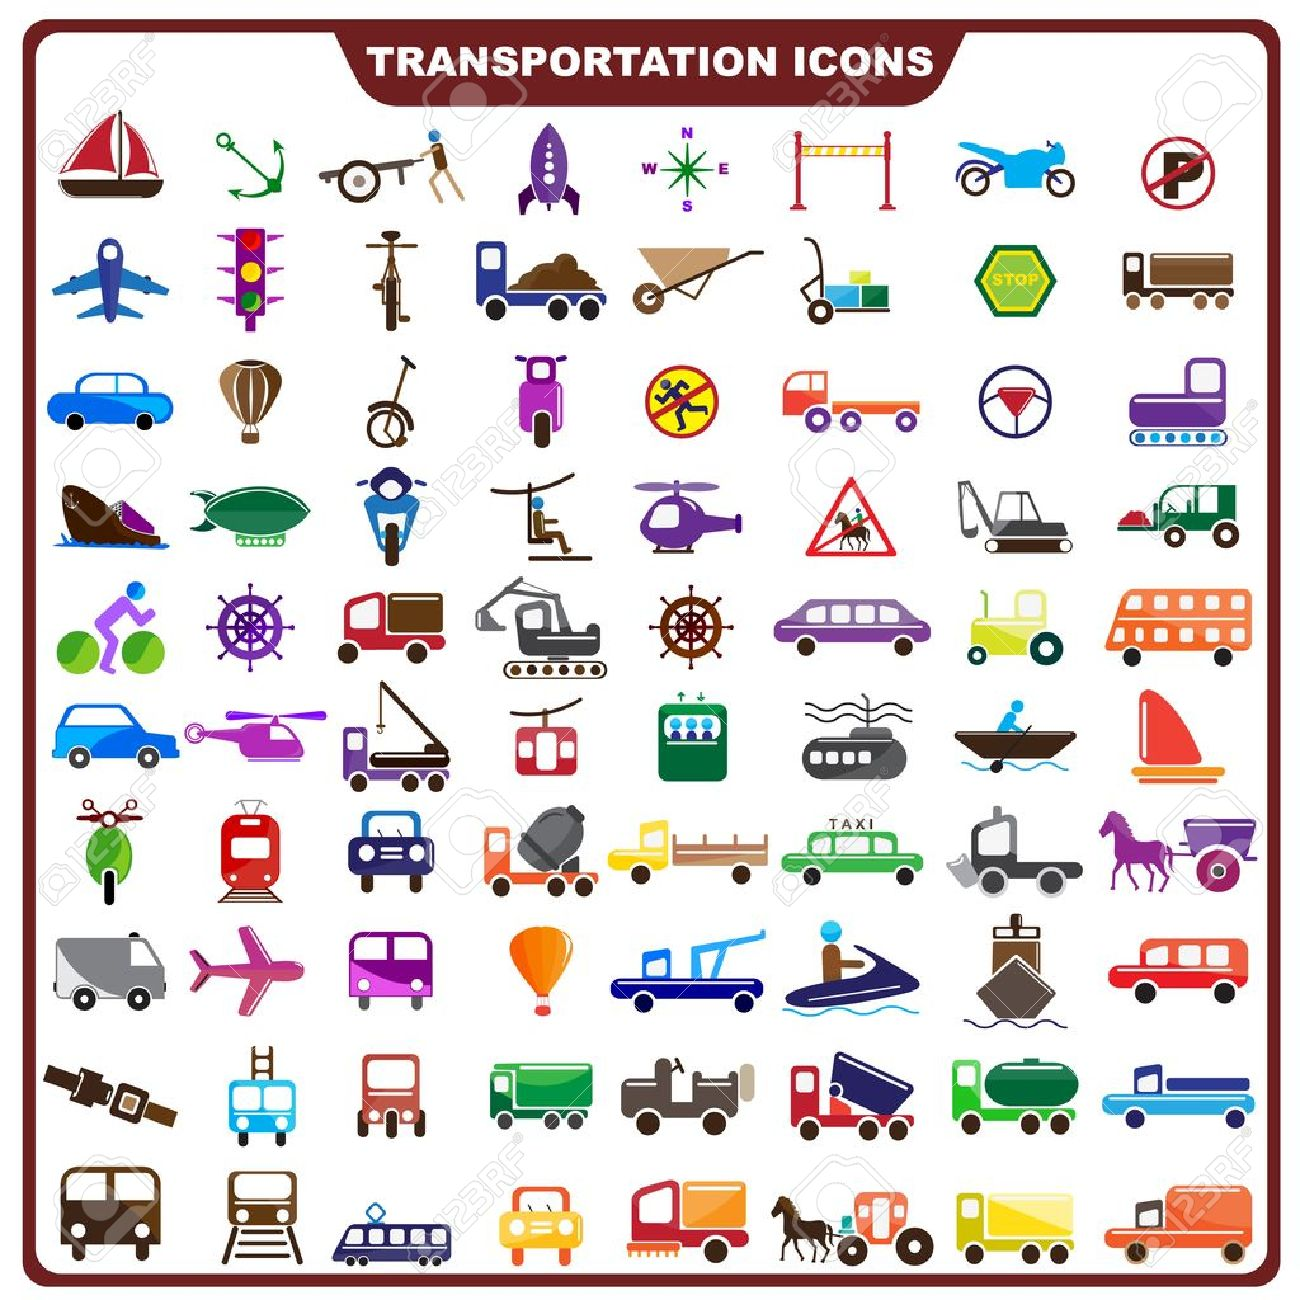 Colorful Transportation Icon Stock Vector - 19372681